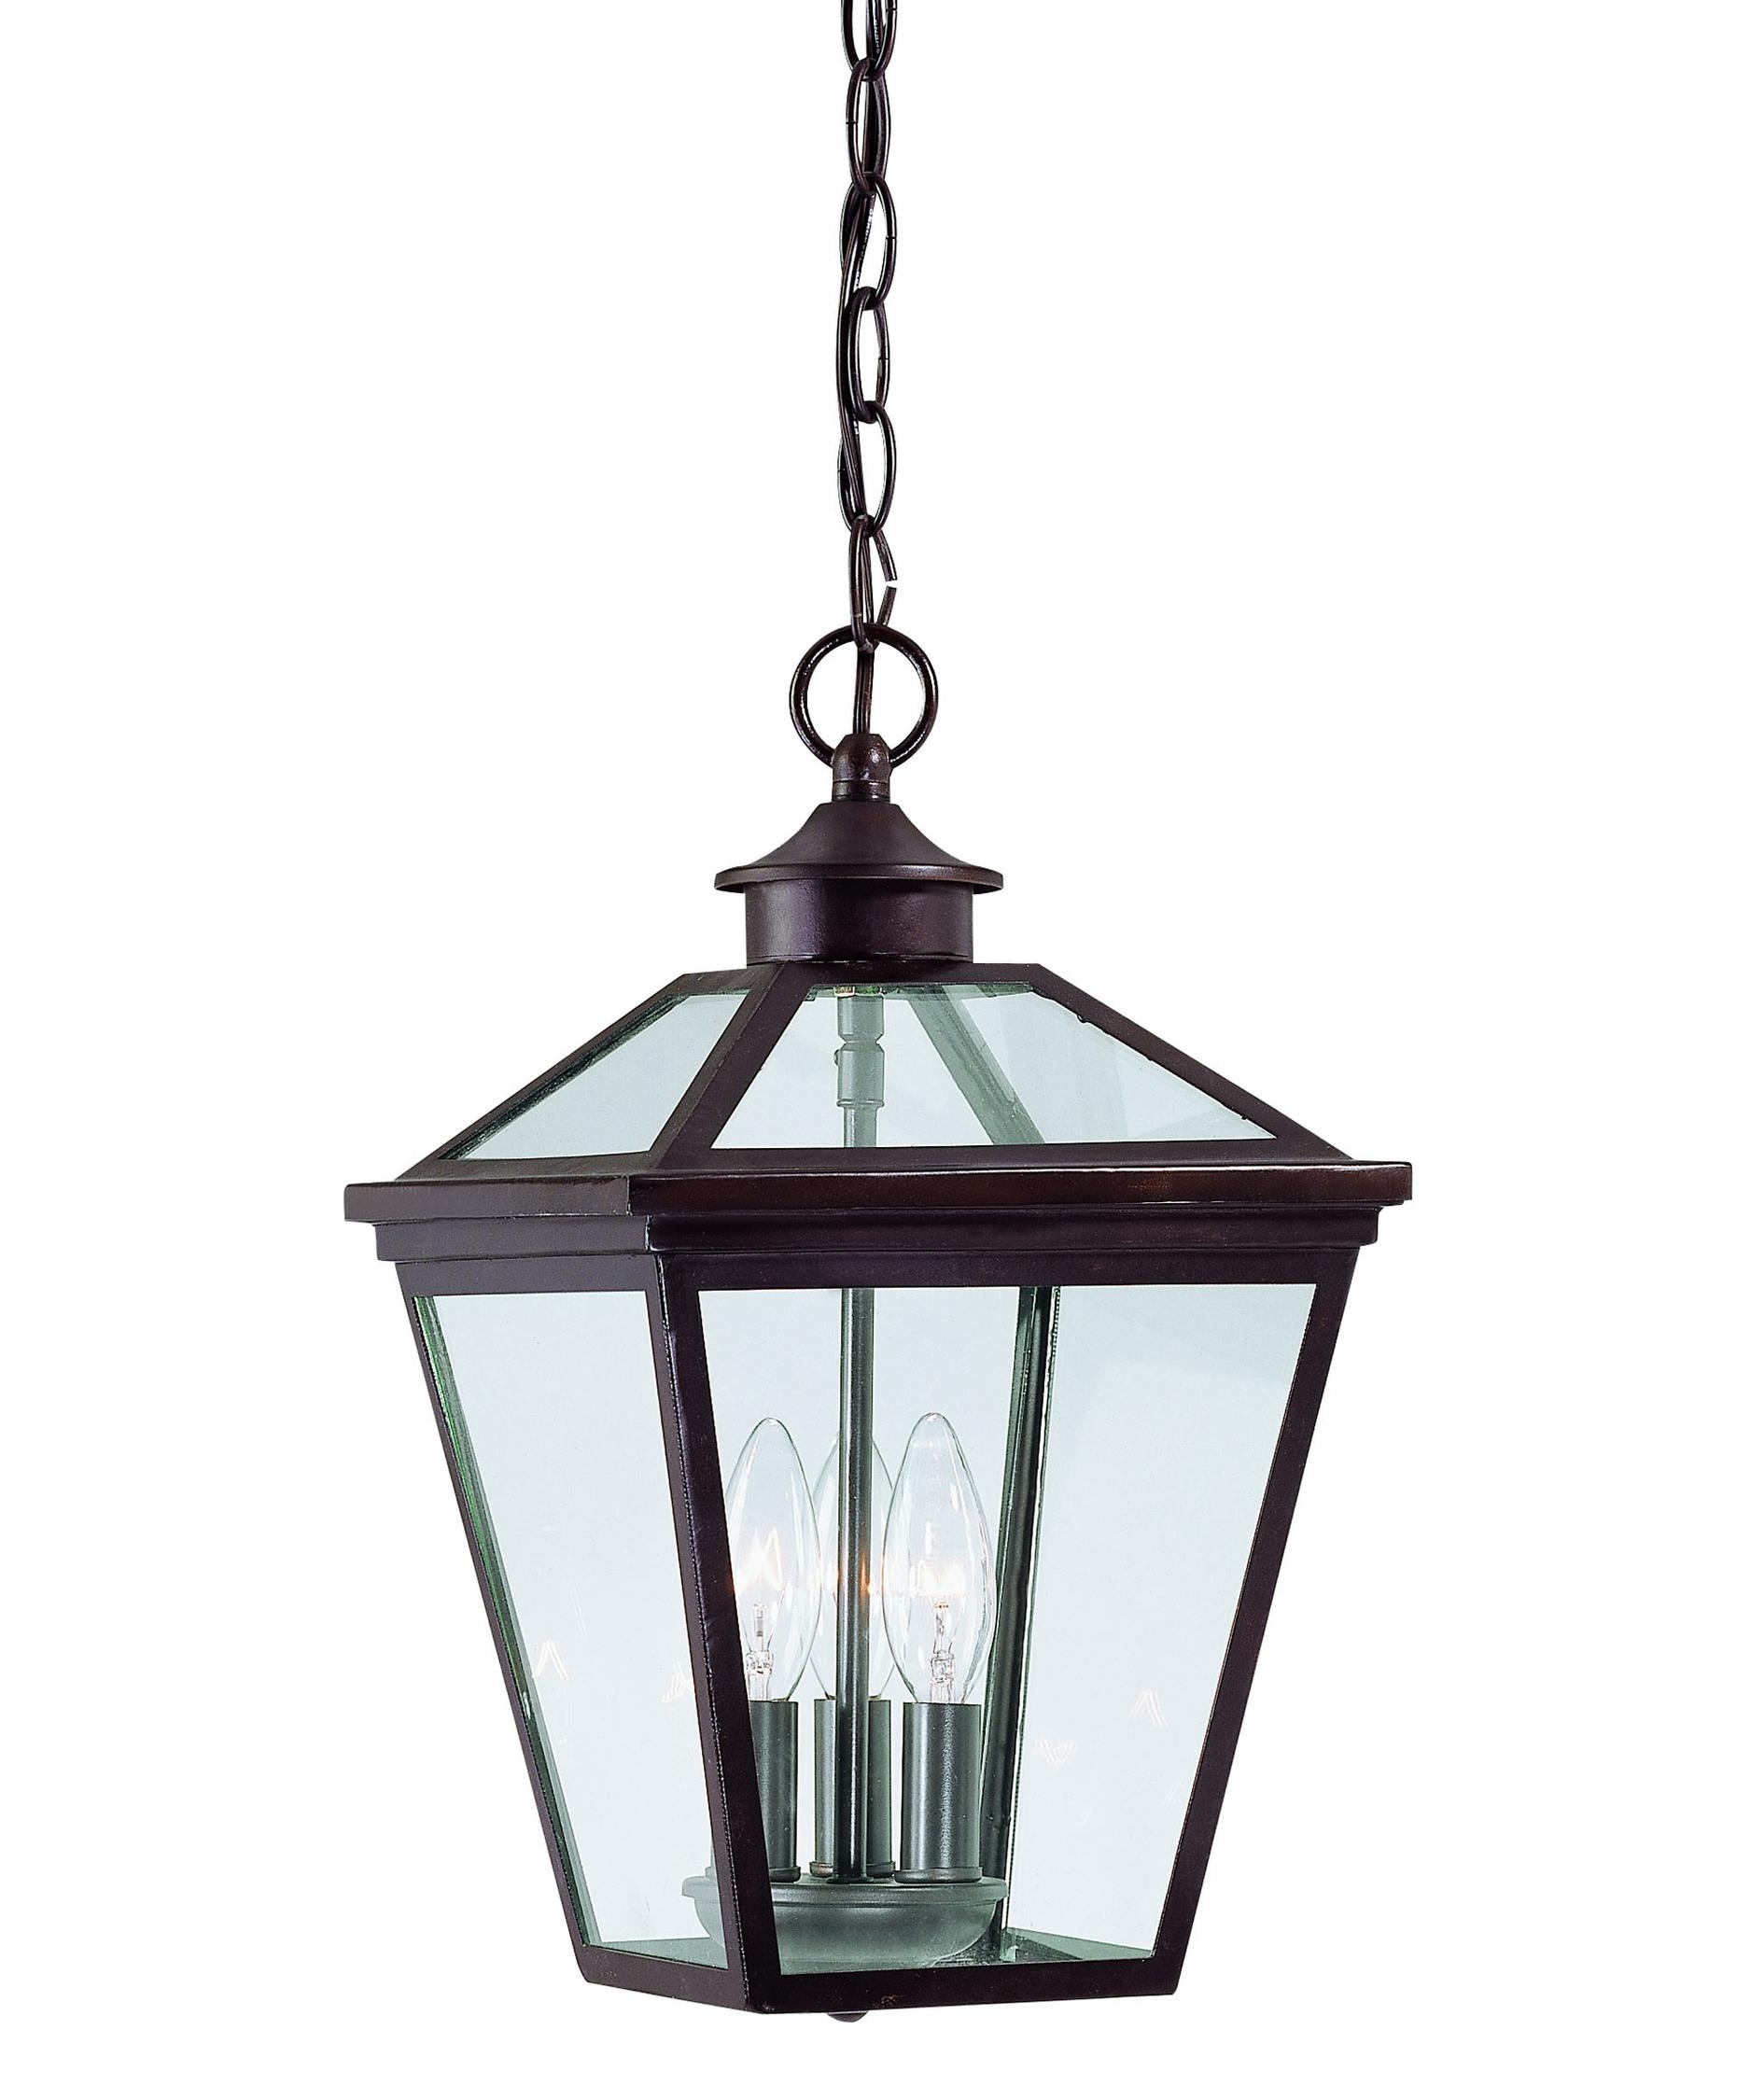 Outdoor Hanging Light Fixtures Home Depot – Outdoor Designs Throughout Outdoor Hanging Lighting Fixtures At Home Depot (View 9 of 15)